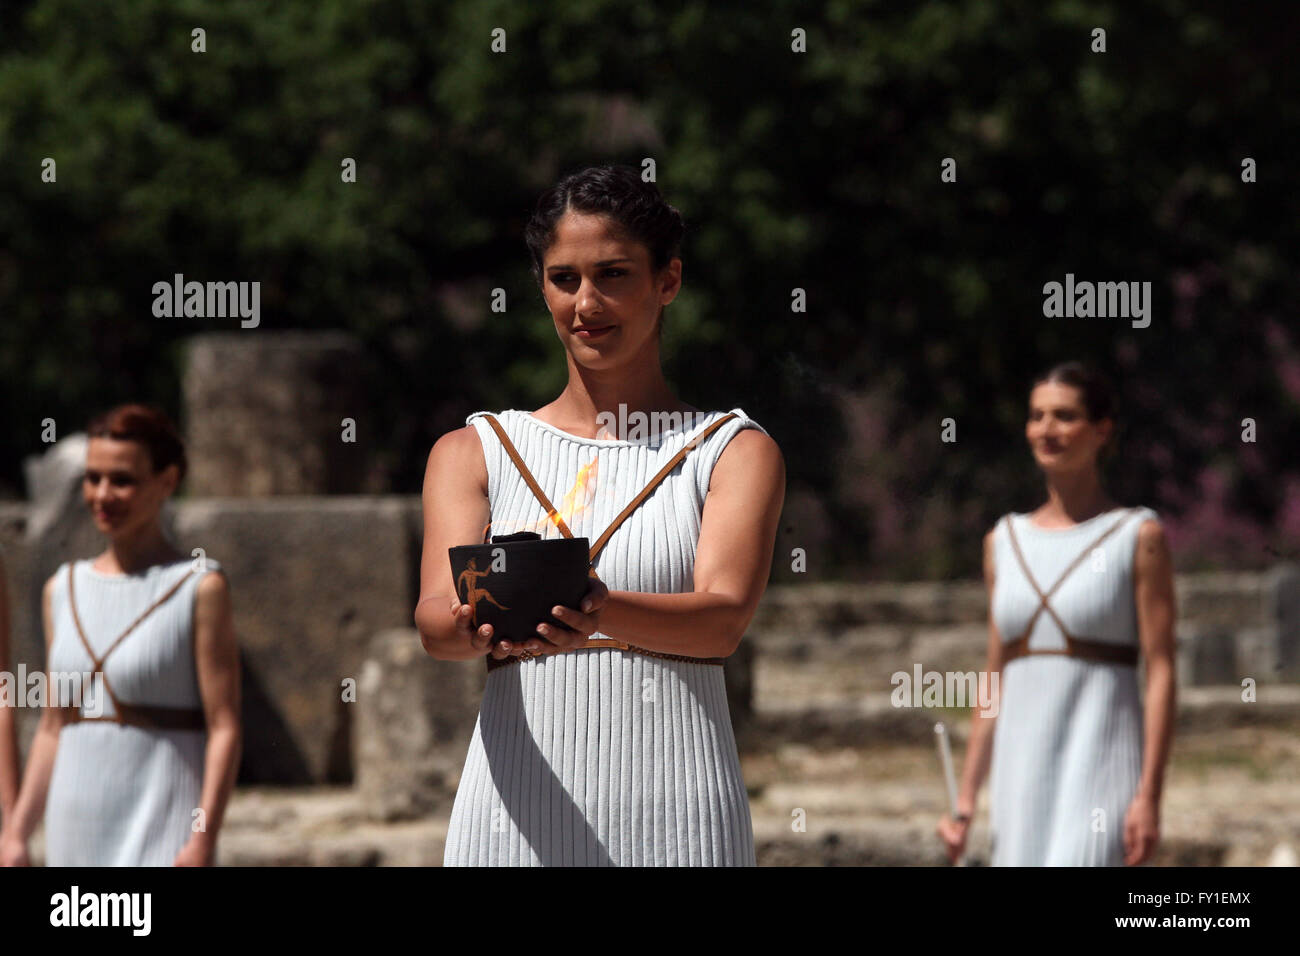 (160420) -- OLYMPIA, Greece, Apr 20, 2016 (Xinhua) -- An actresses acting as the role of ancient priestess carries - Stock Image